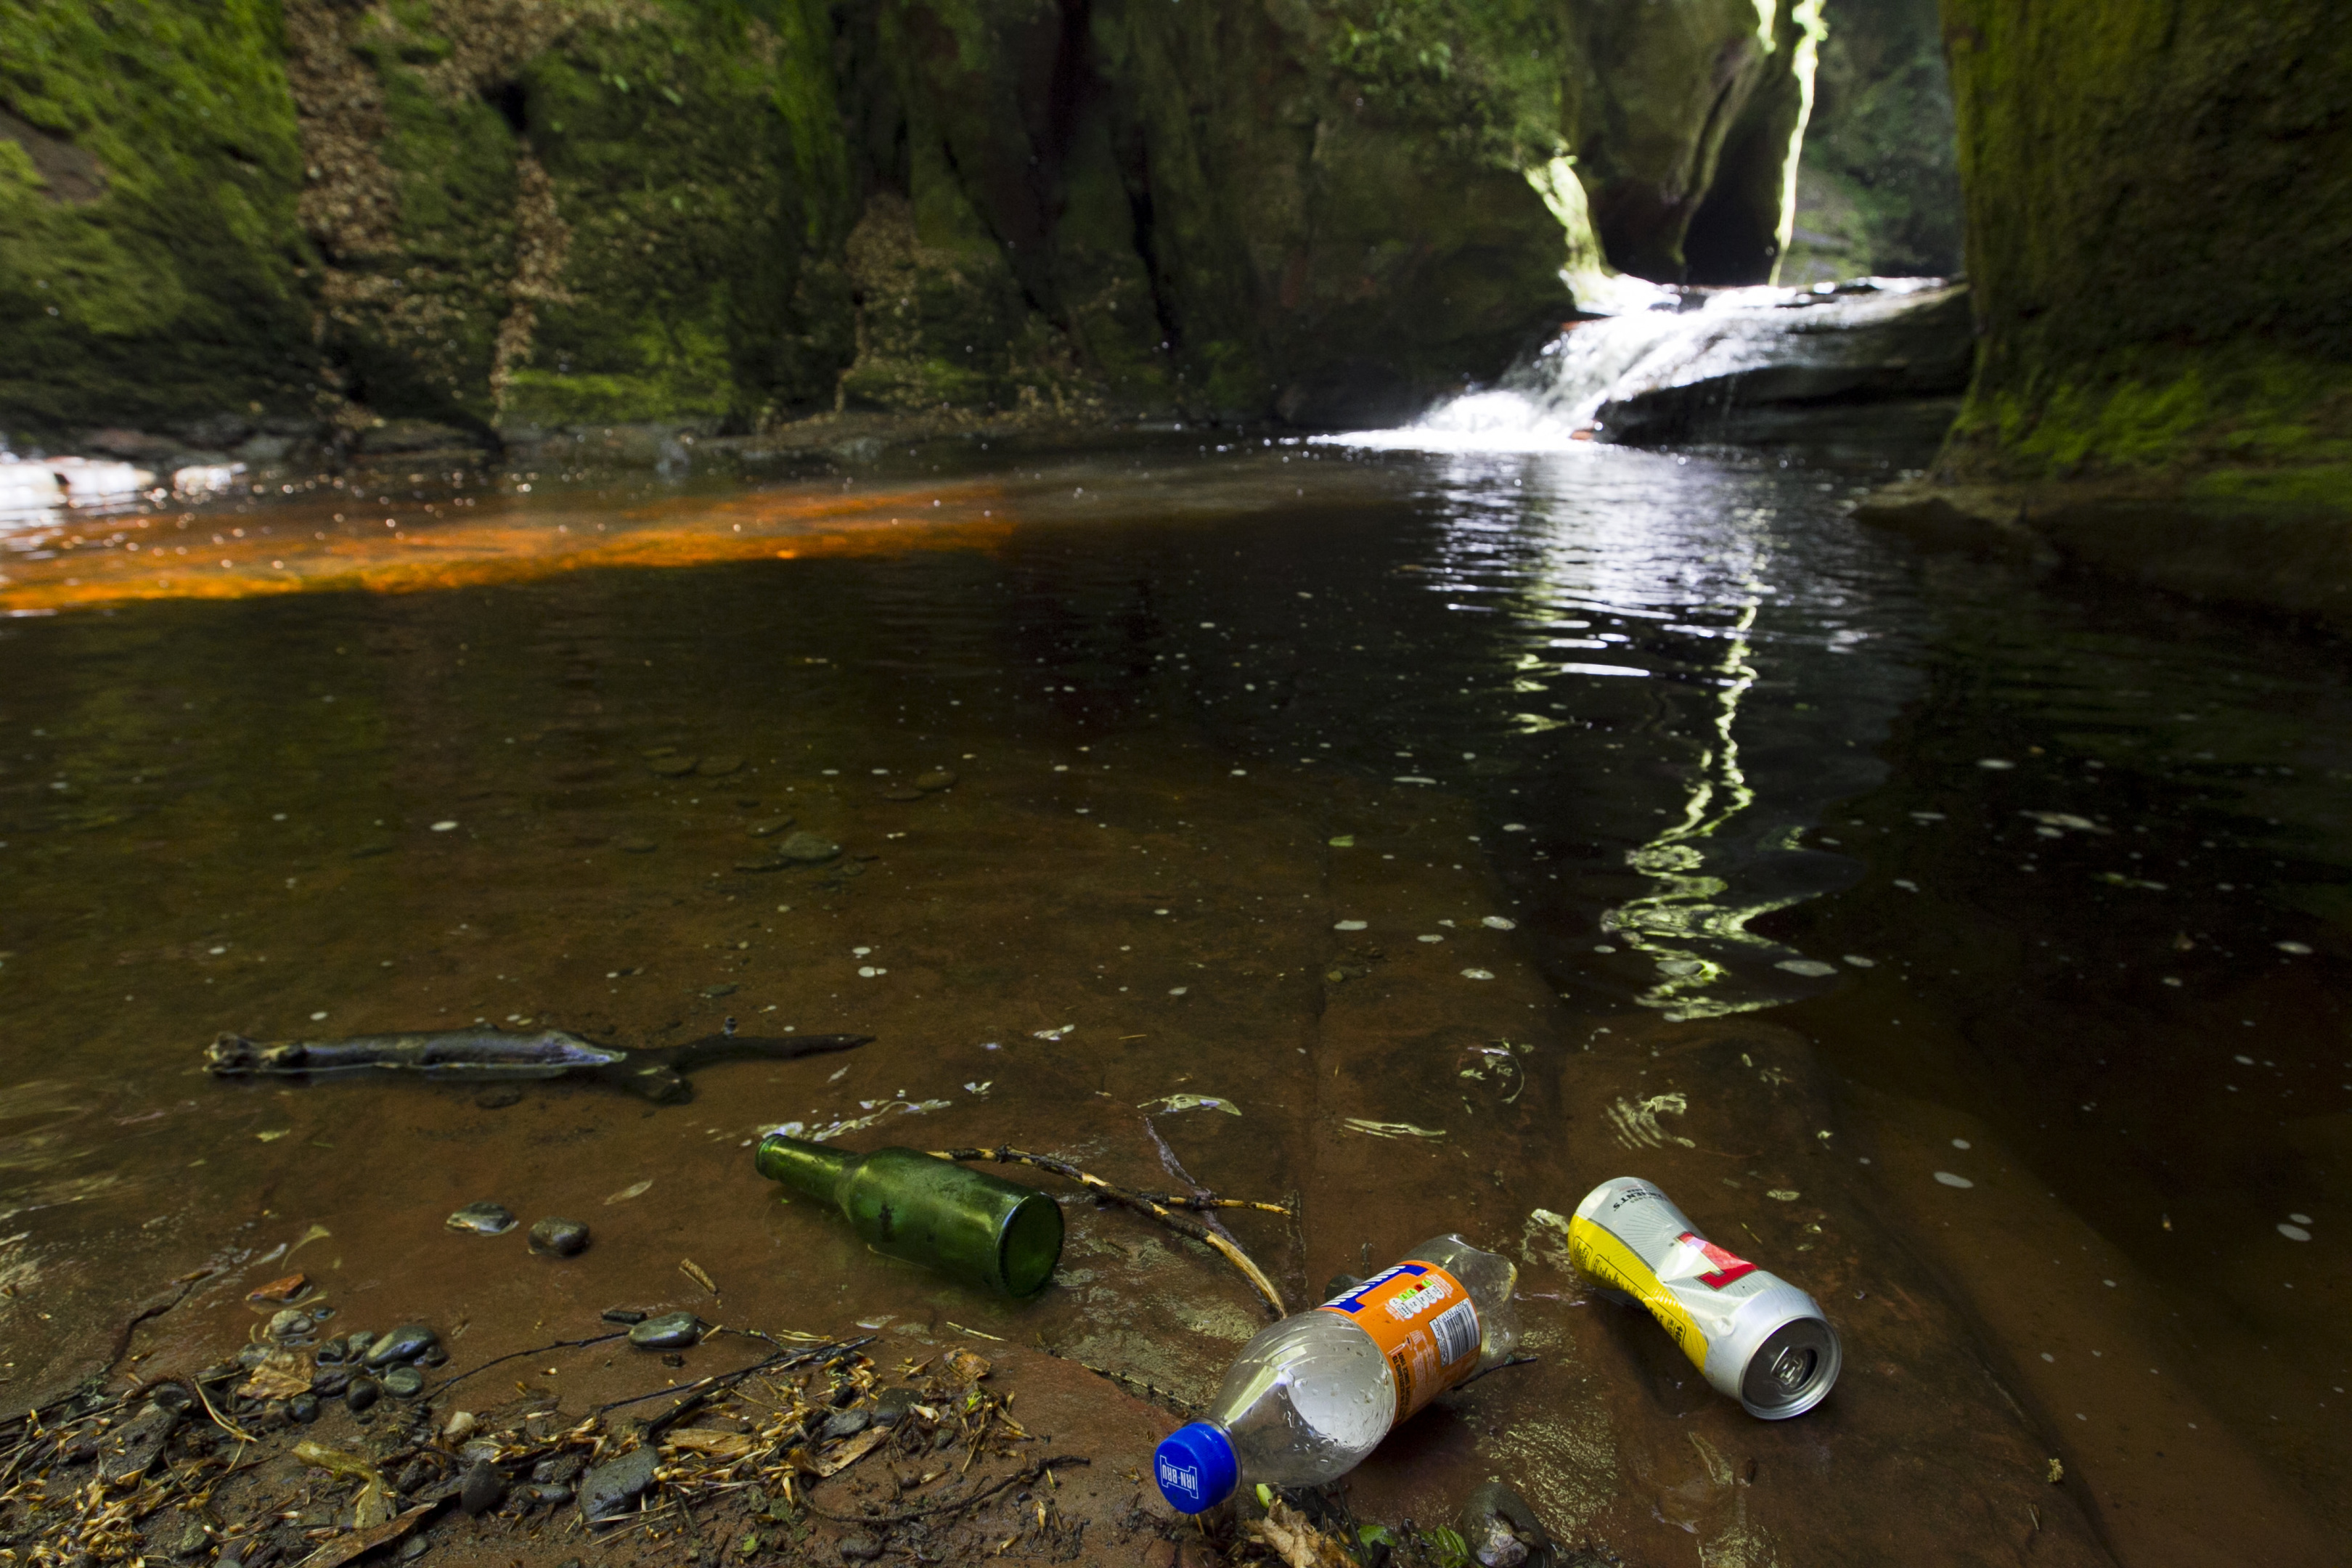 Litter has blighted places like the Devil's Pulpit